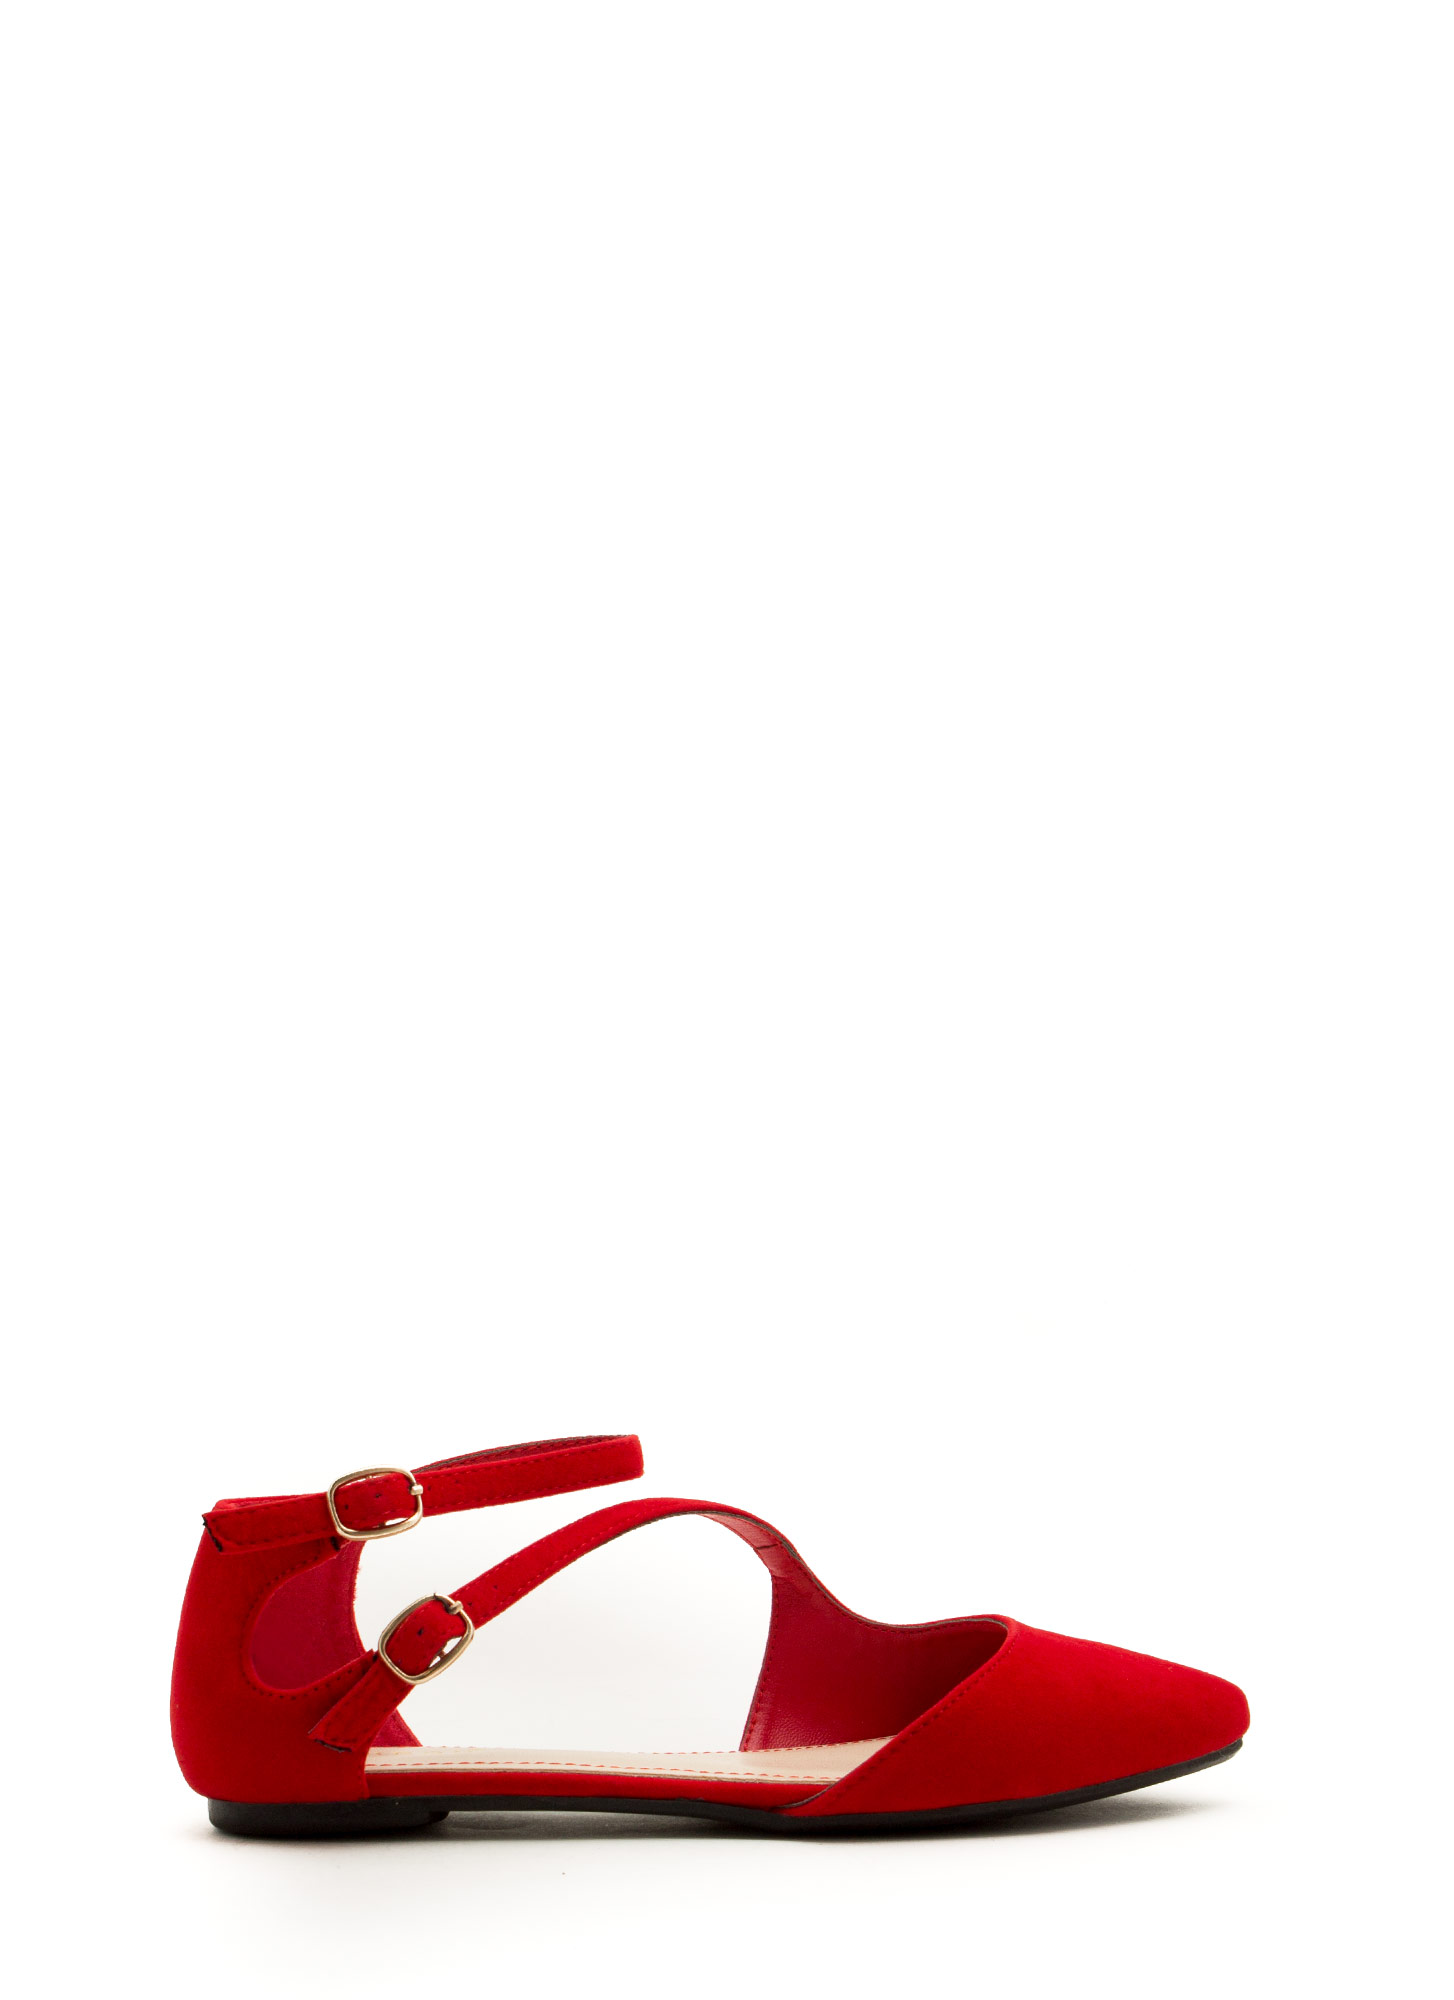 Double Buckle Cross Strap Flats RED